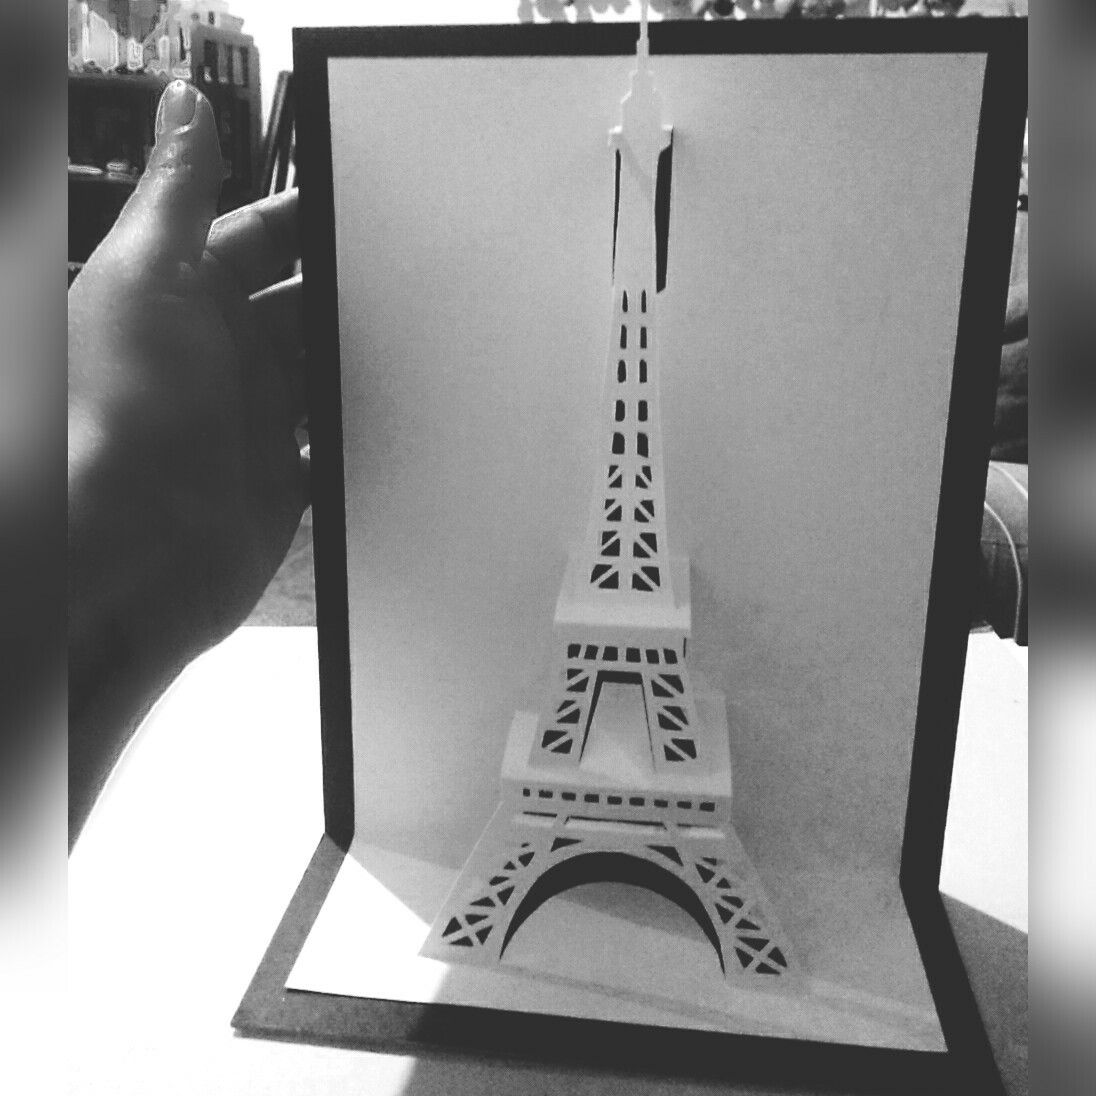 Torre Eiffel / Kirigami / Papel | POP UP | Pinterest | Kirigami ...